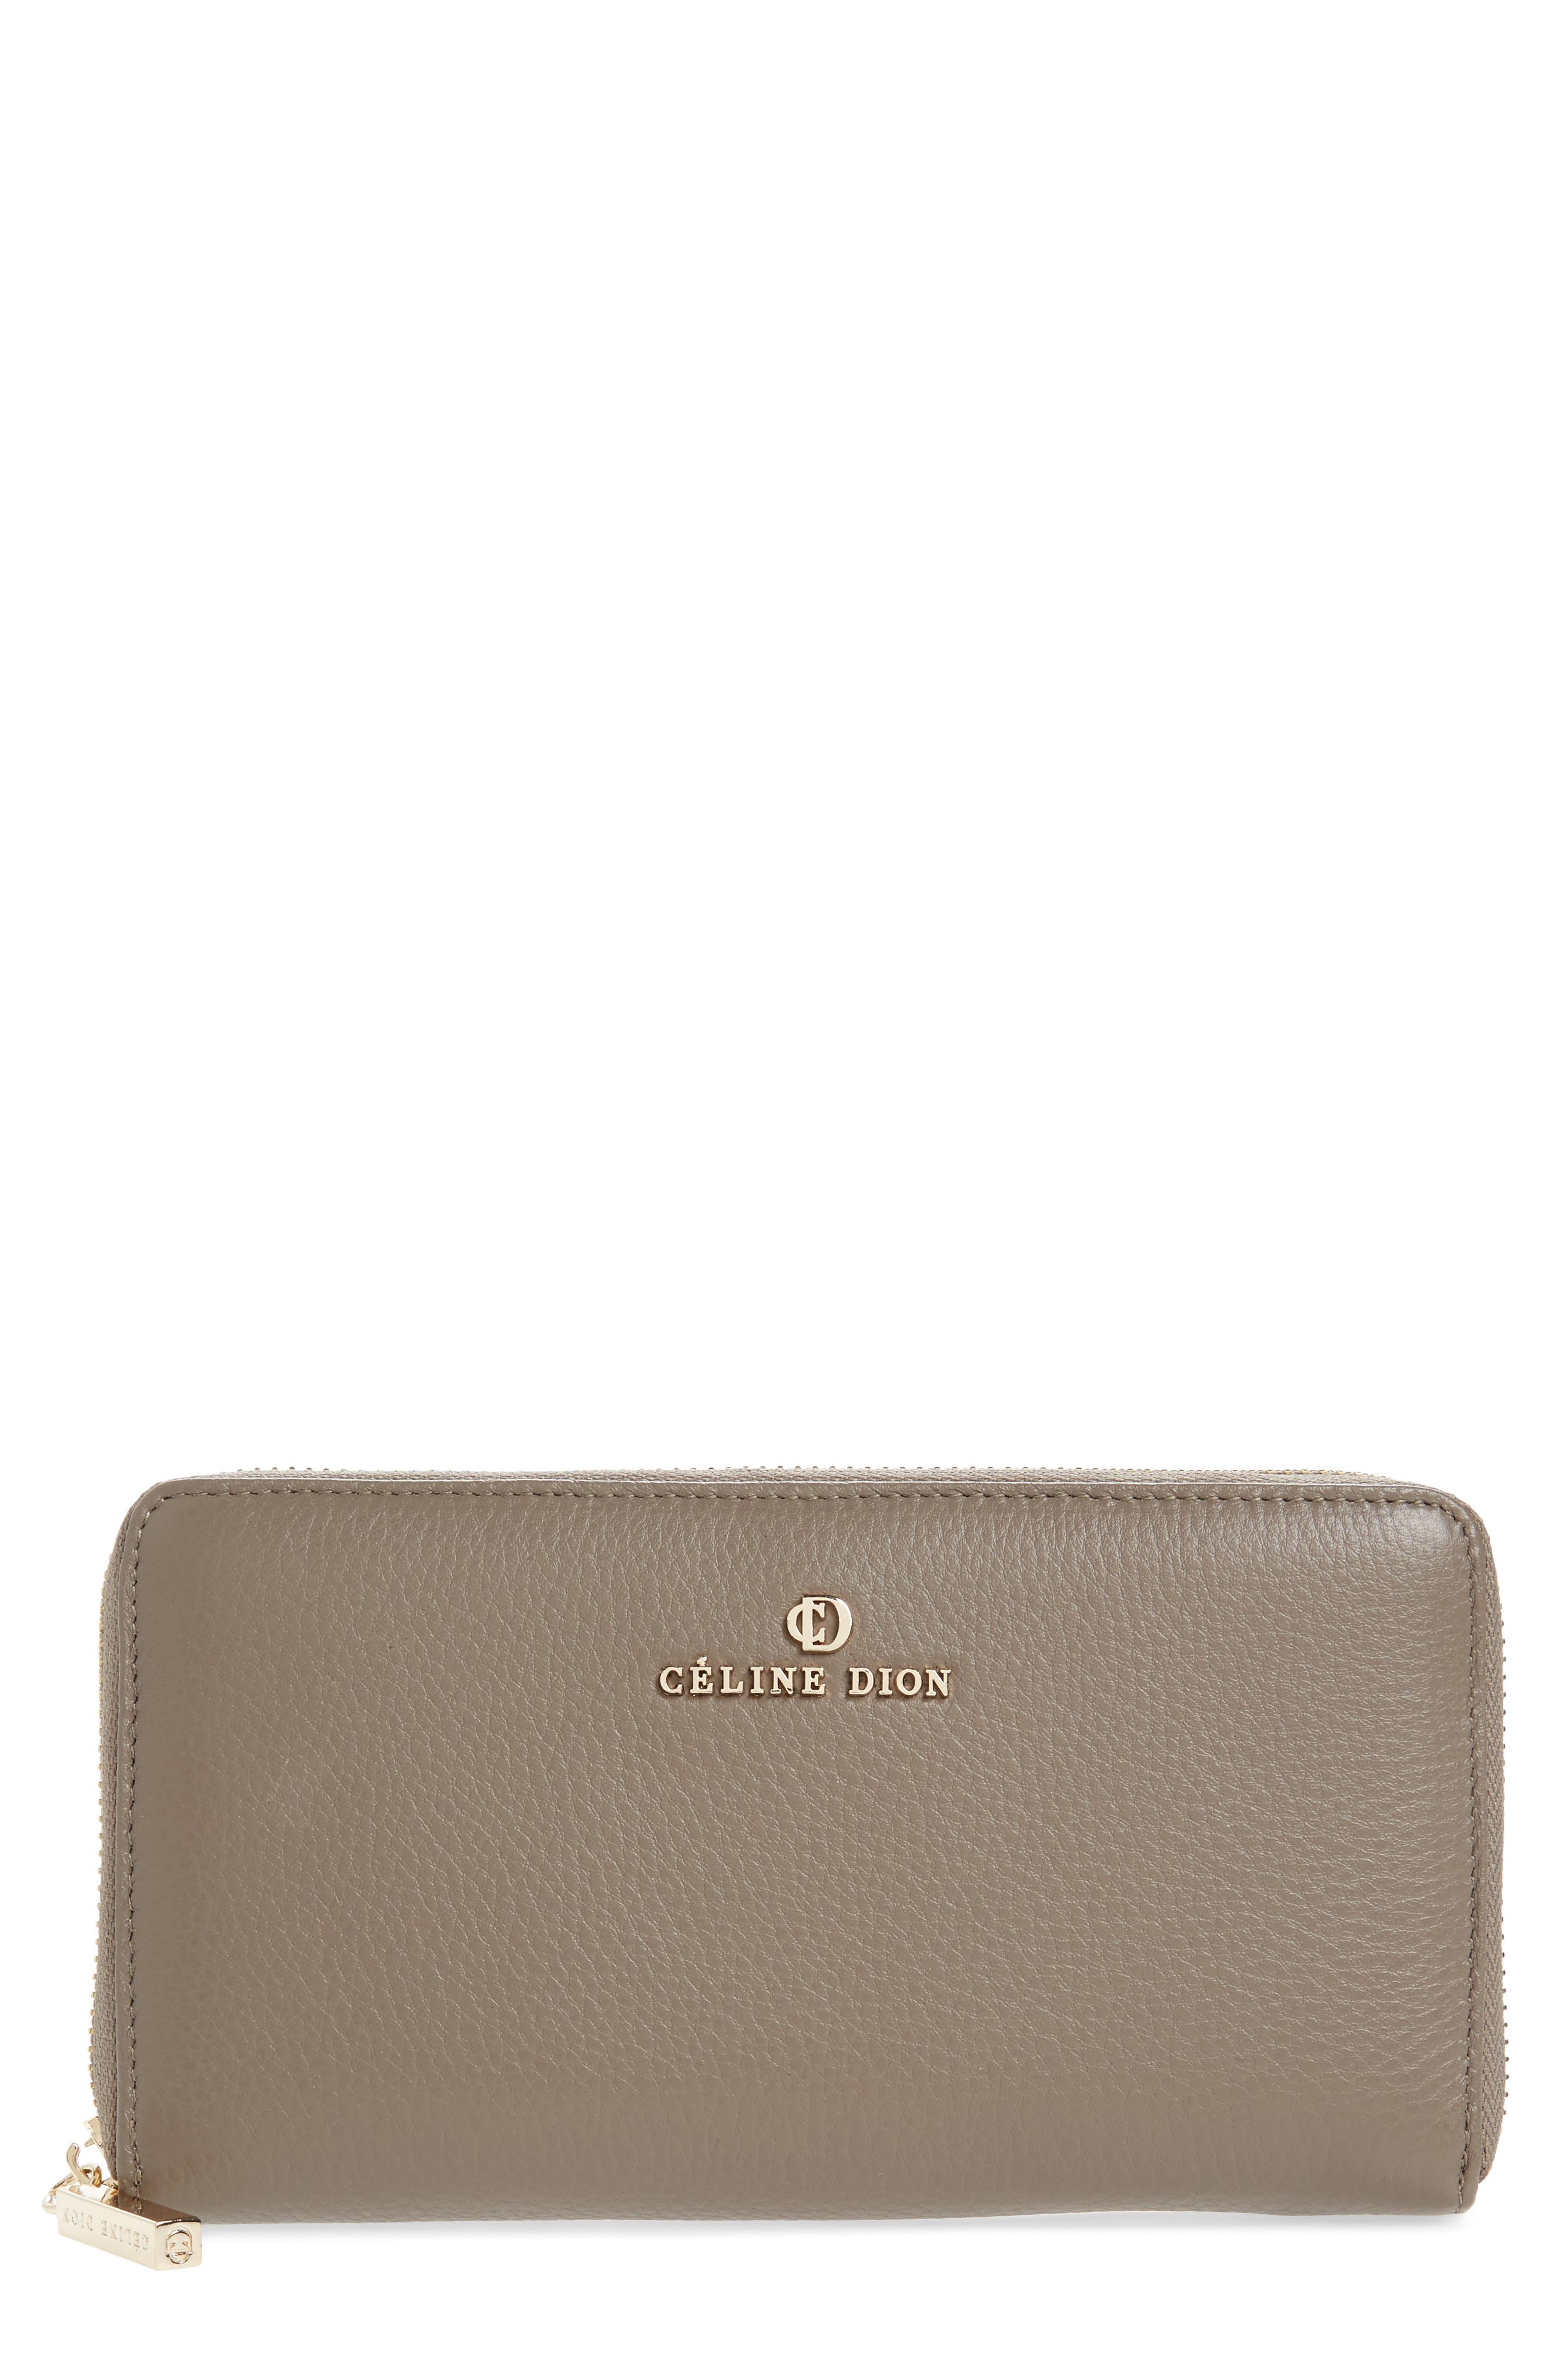 Céline Dion Adagio Leather Wallet,                         Main,                         color, Taupe